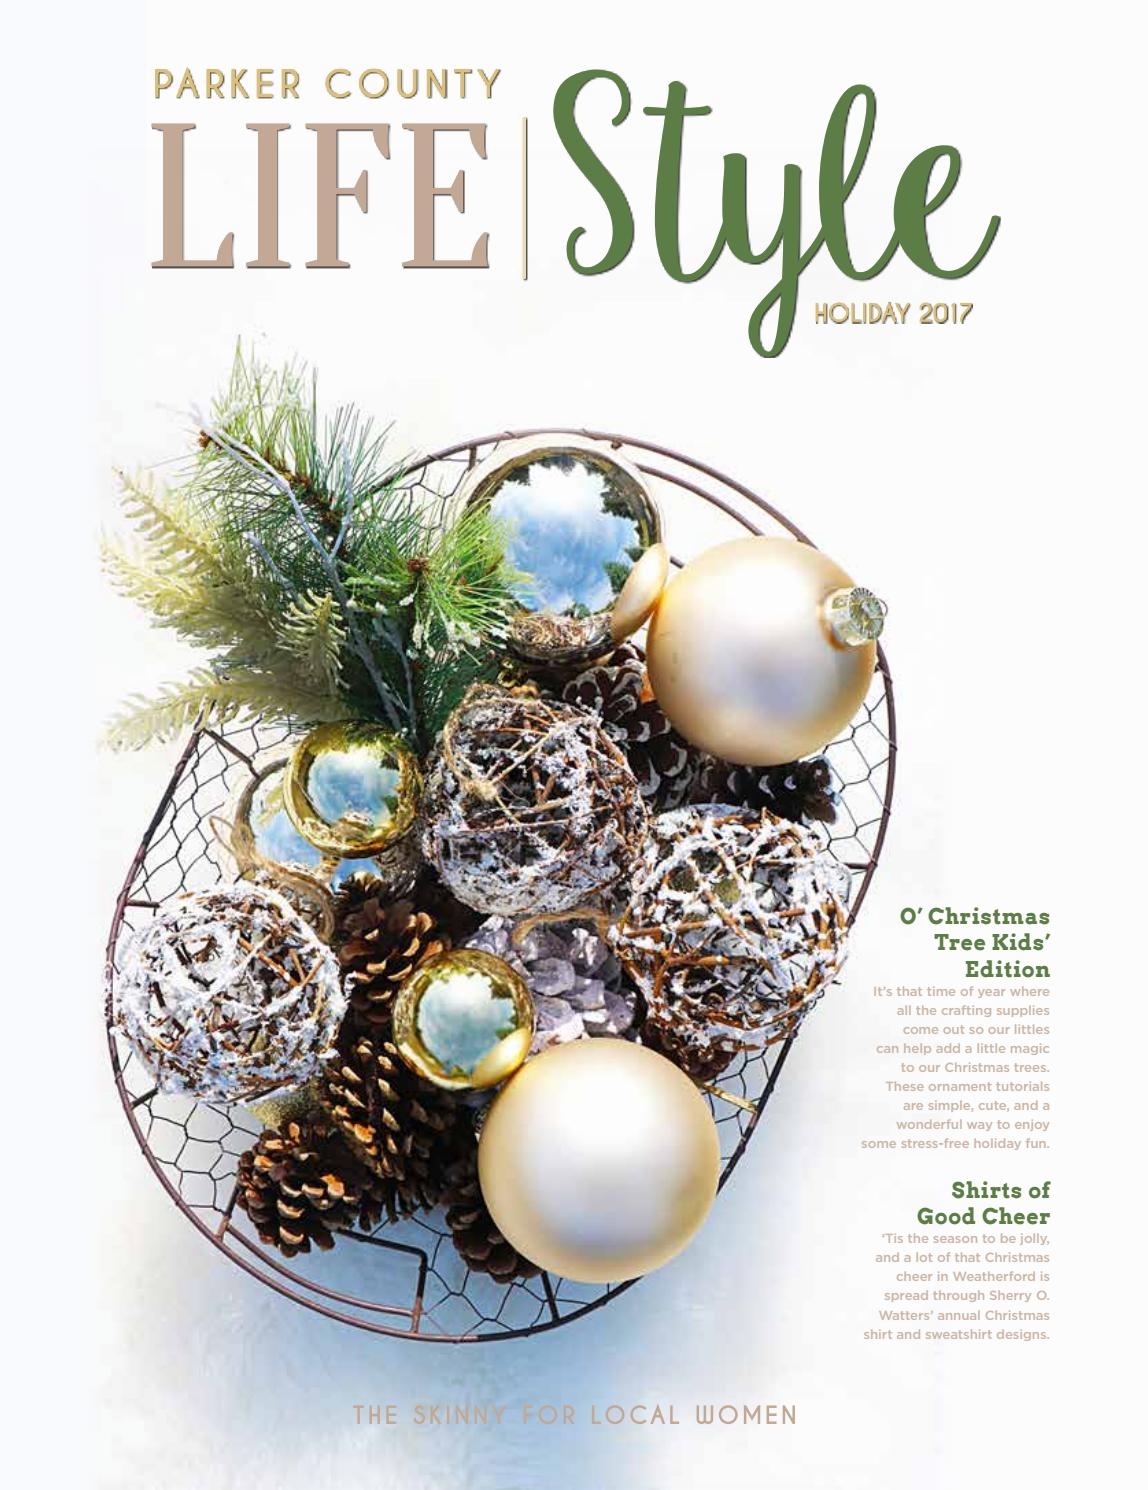 803984e6 Parker County LifeStyle - Holiday 2017 by RedFin - issuu